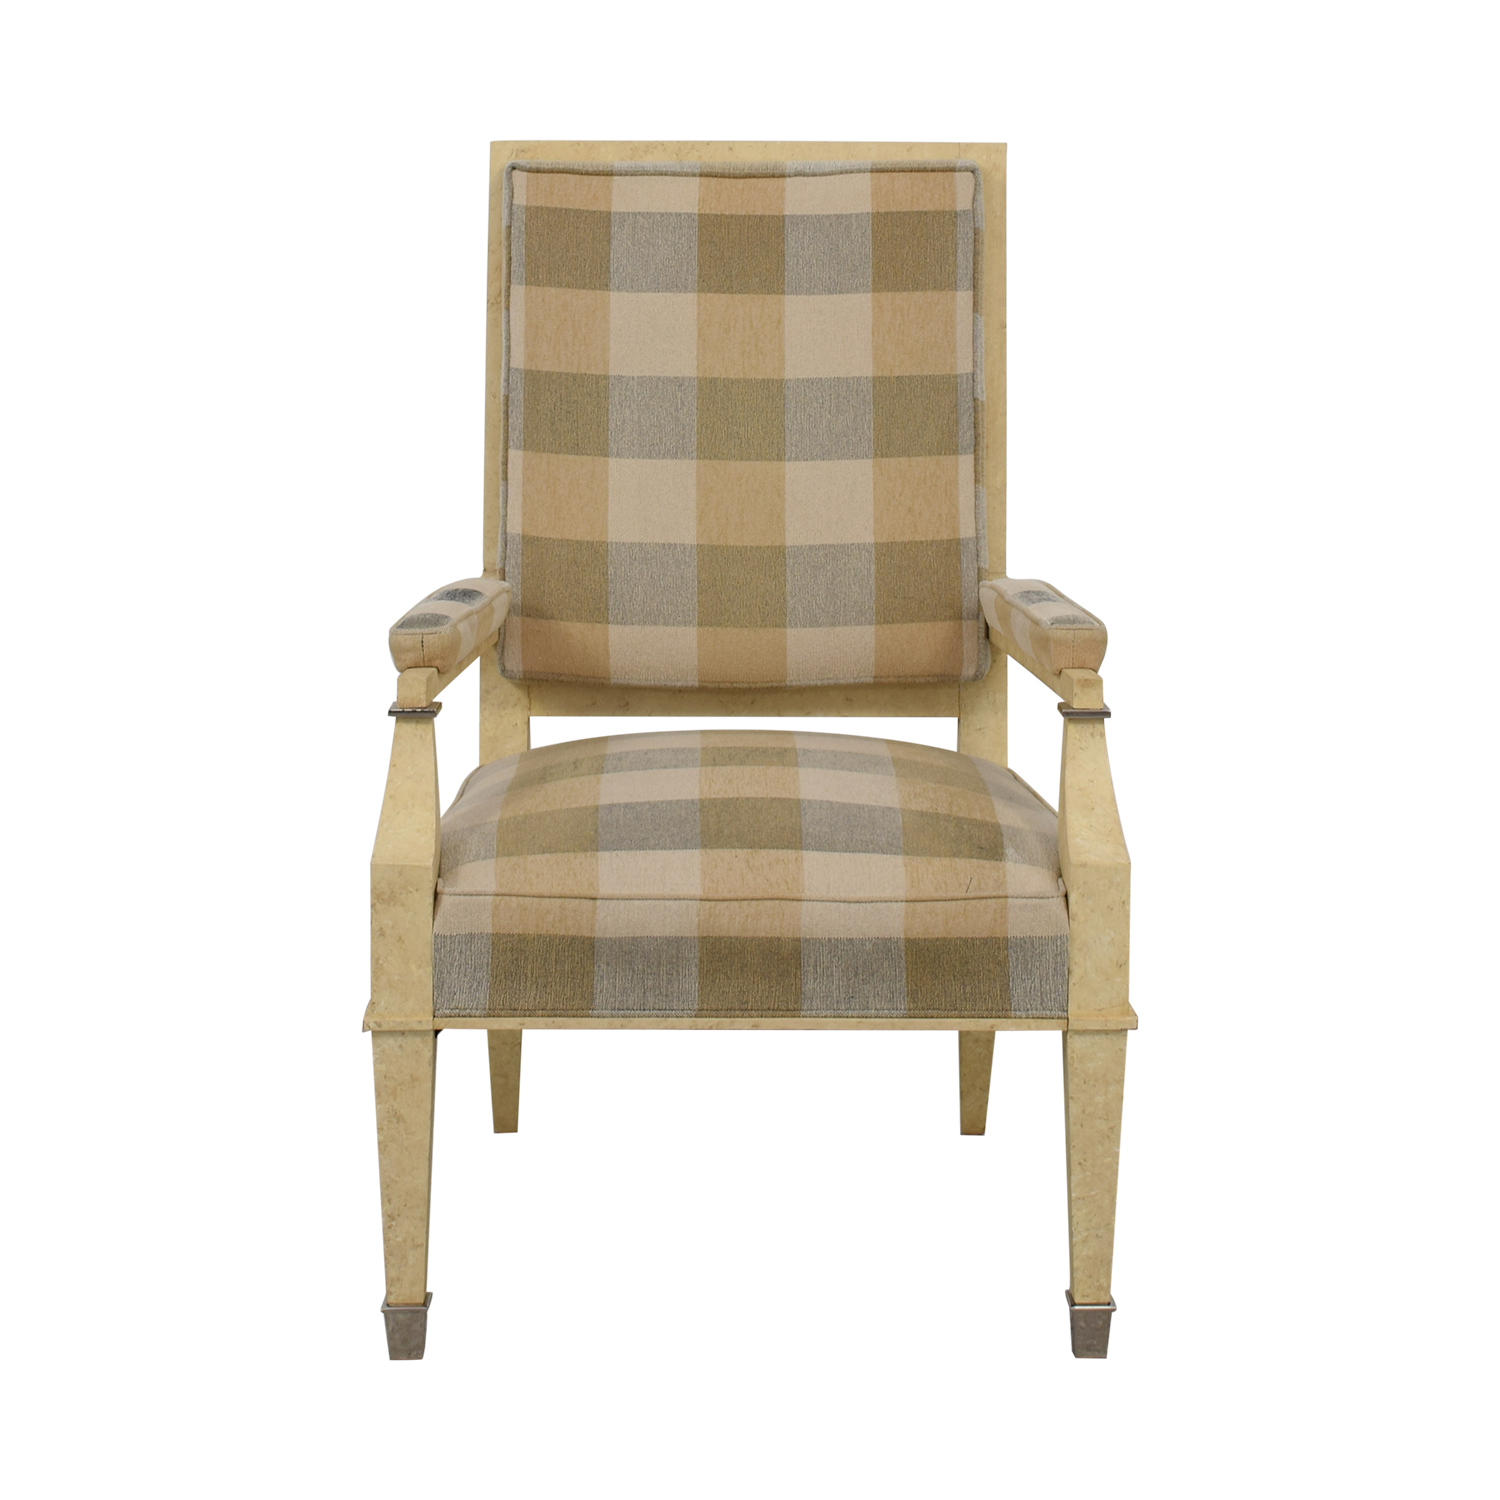 Kravet Furniture Renaissance Lounge Chair / Chairs